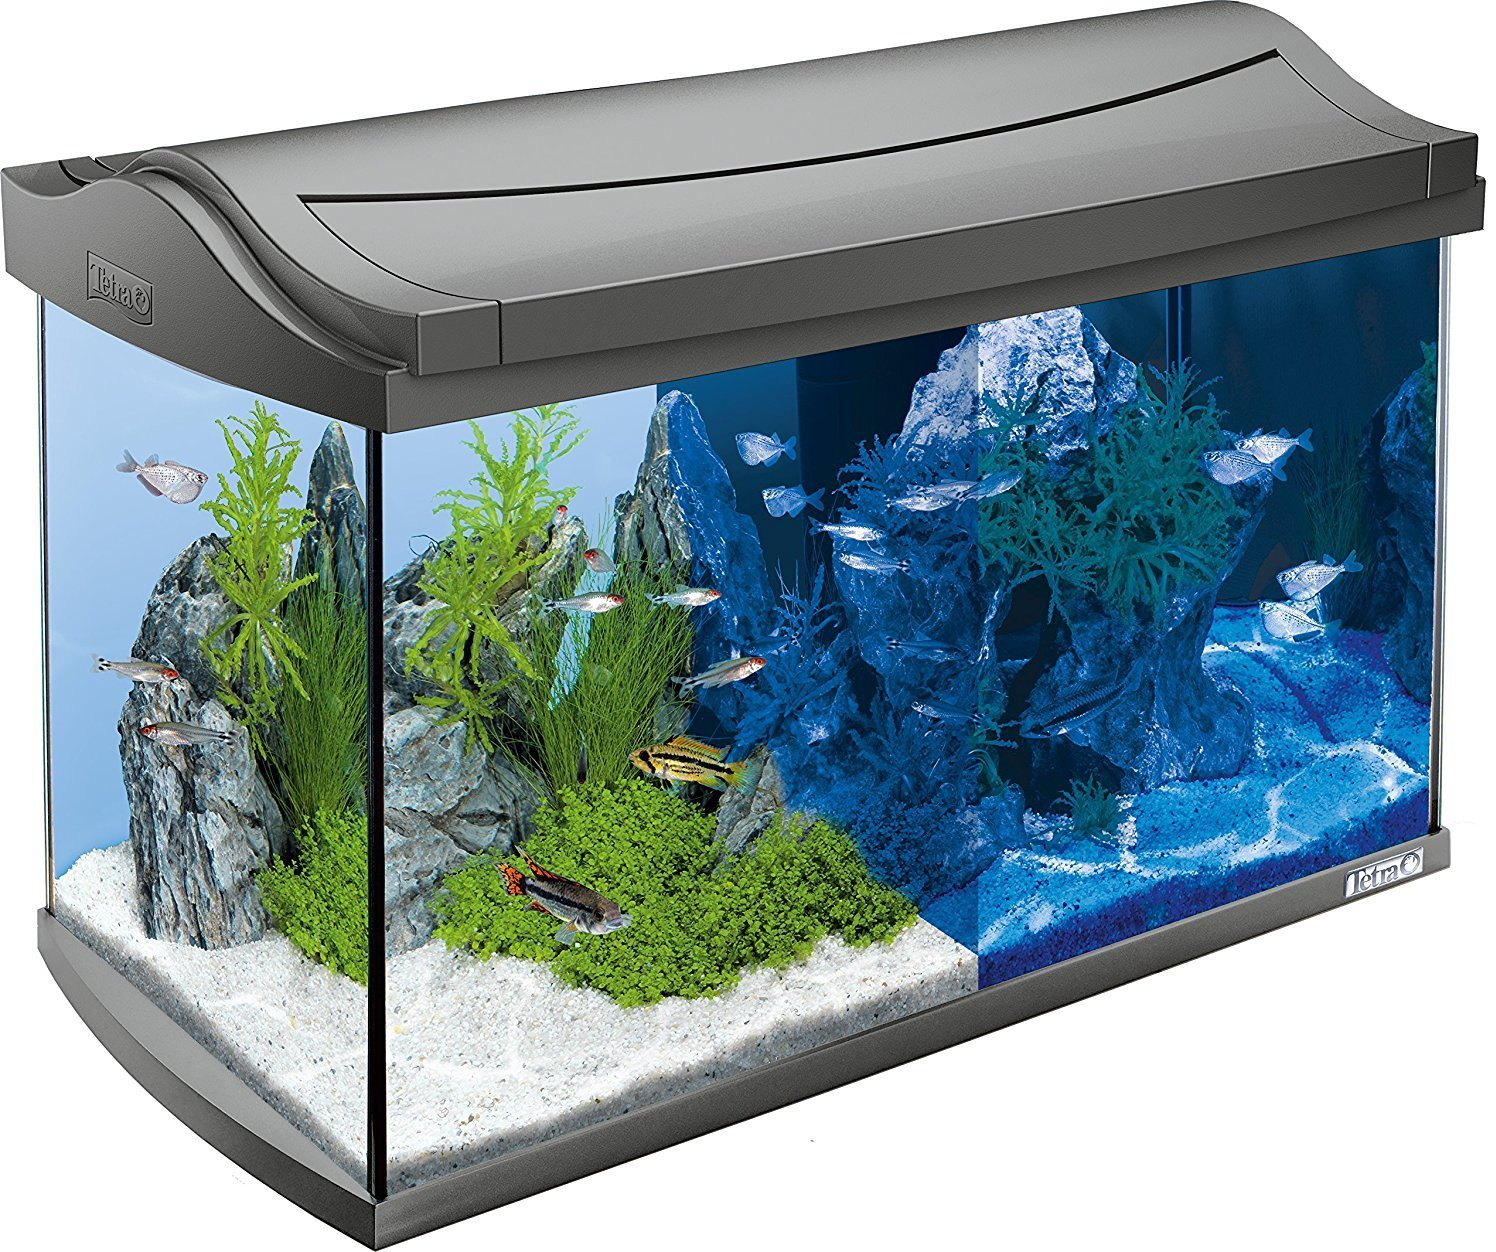 Tetra aqua art led aquarium 60l kopen frank for Aquarium 80 litres